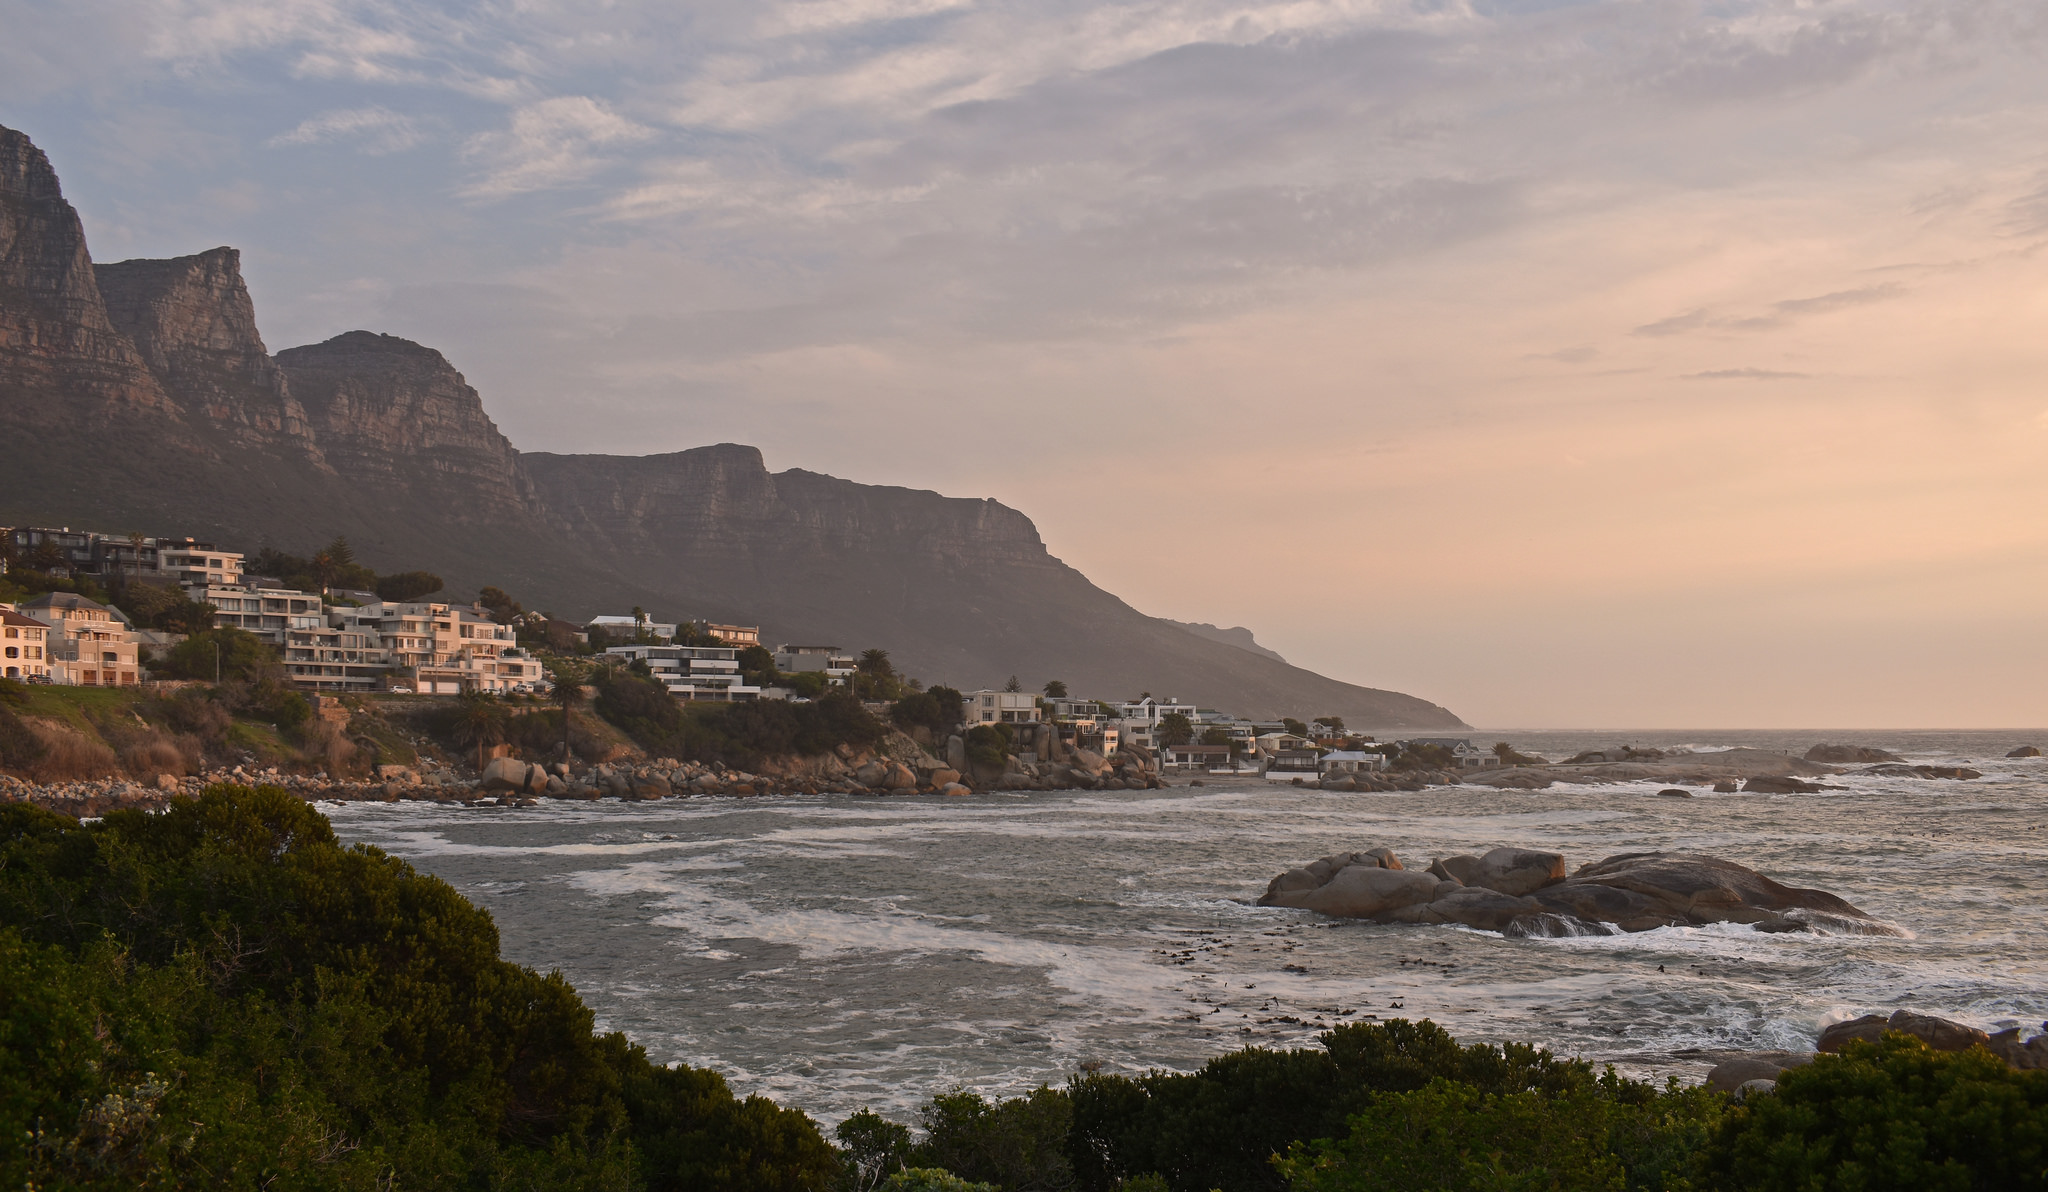 Camps Bay, a suburb of Cape Town, is a great place for scenic views. Image credit:    Harshil Shah   /   Creative Commons